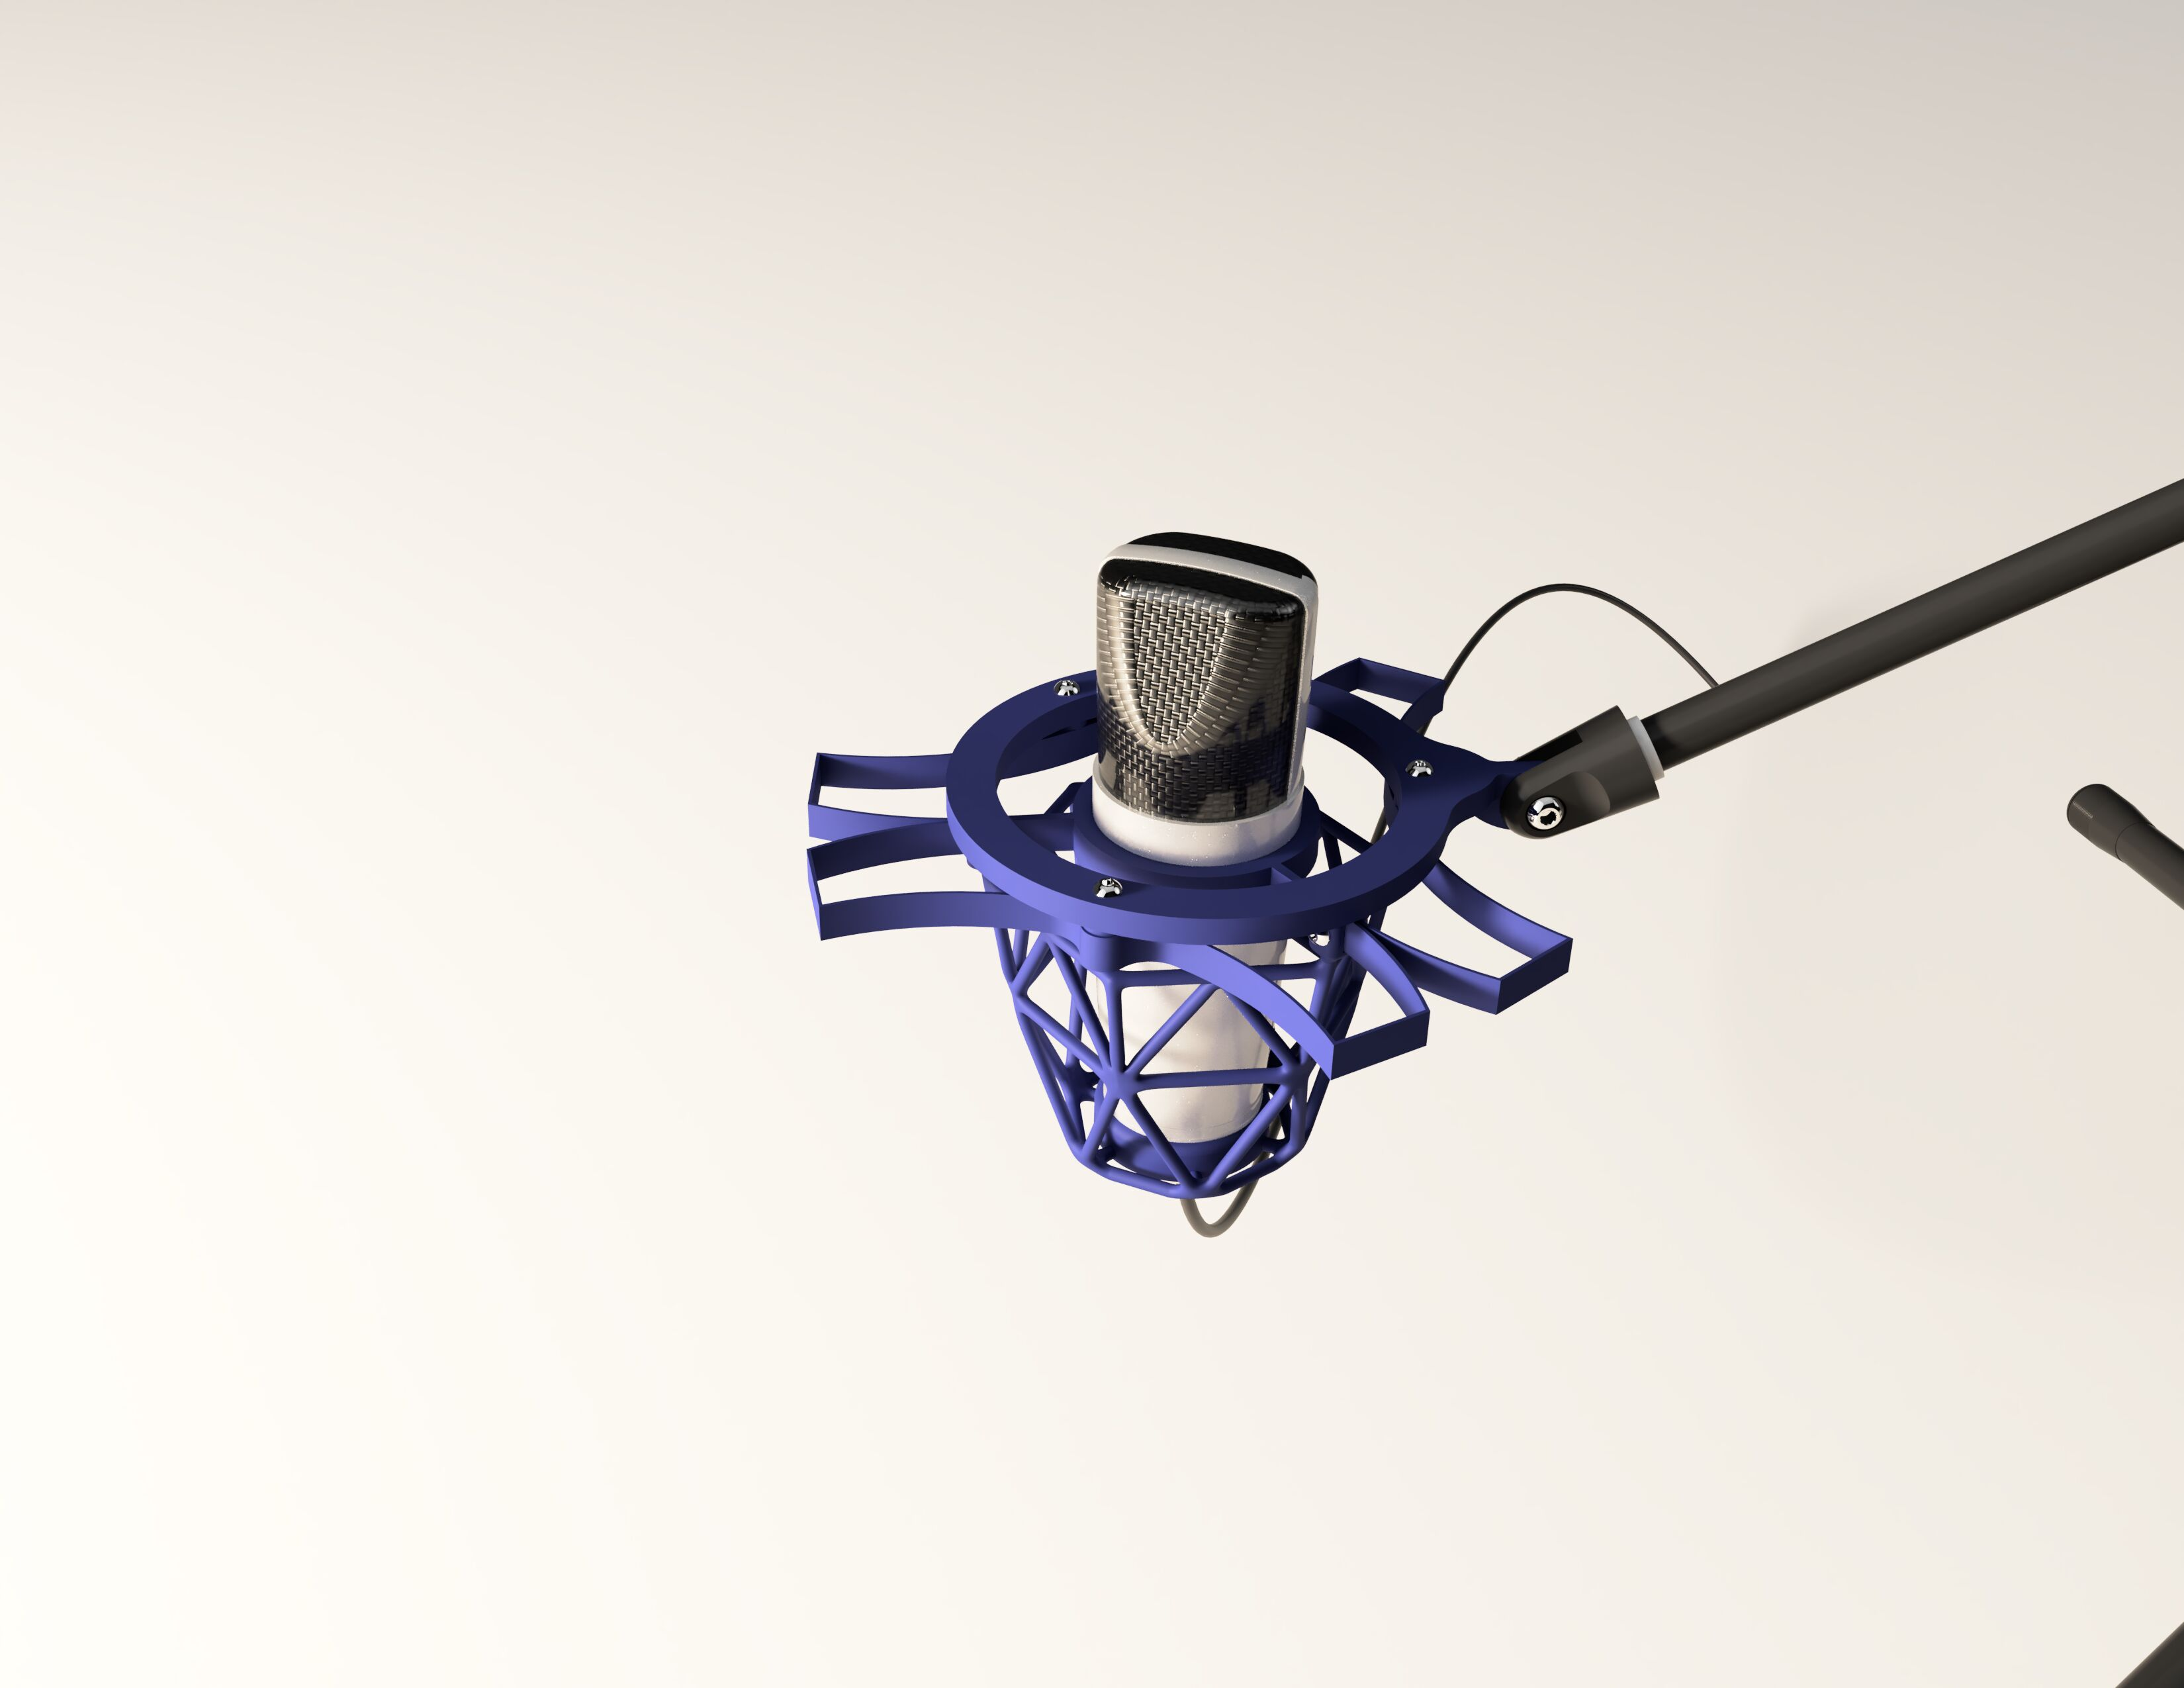 Microphone-shock-mount-assembly-2020-jun-23-12-52-54pm-000-customizedview13956598526-png-3500-3500